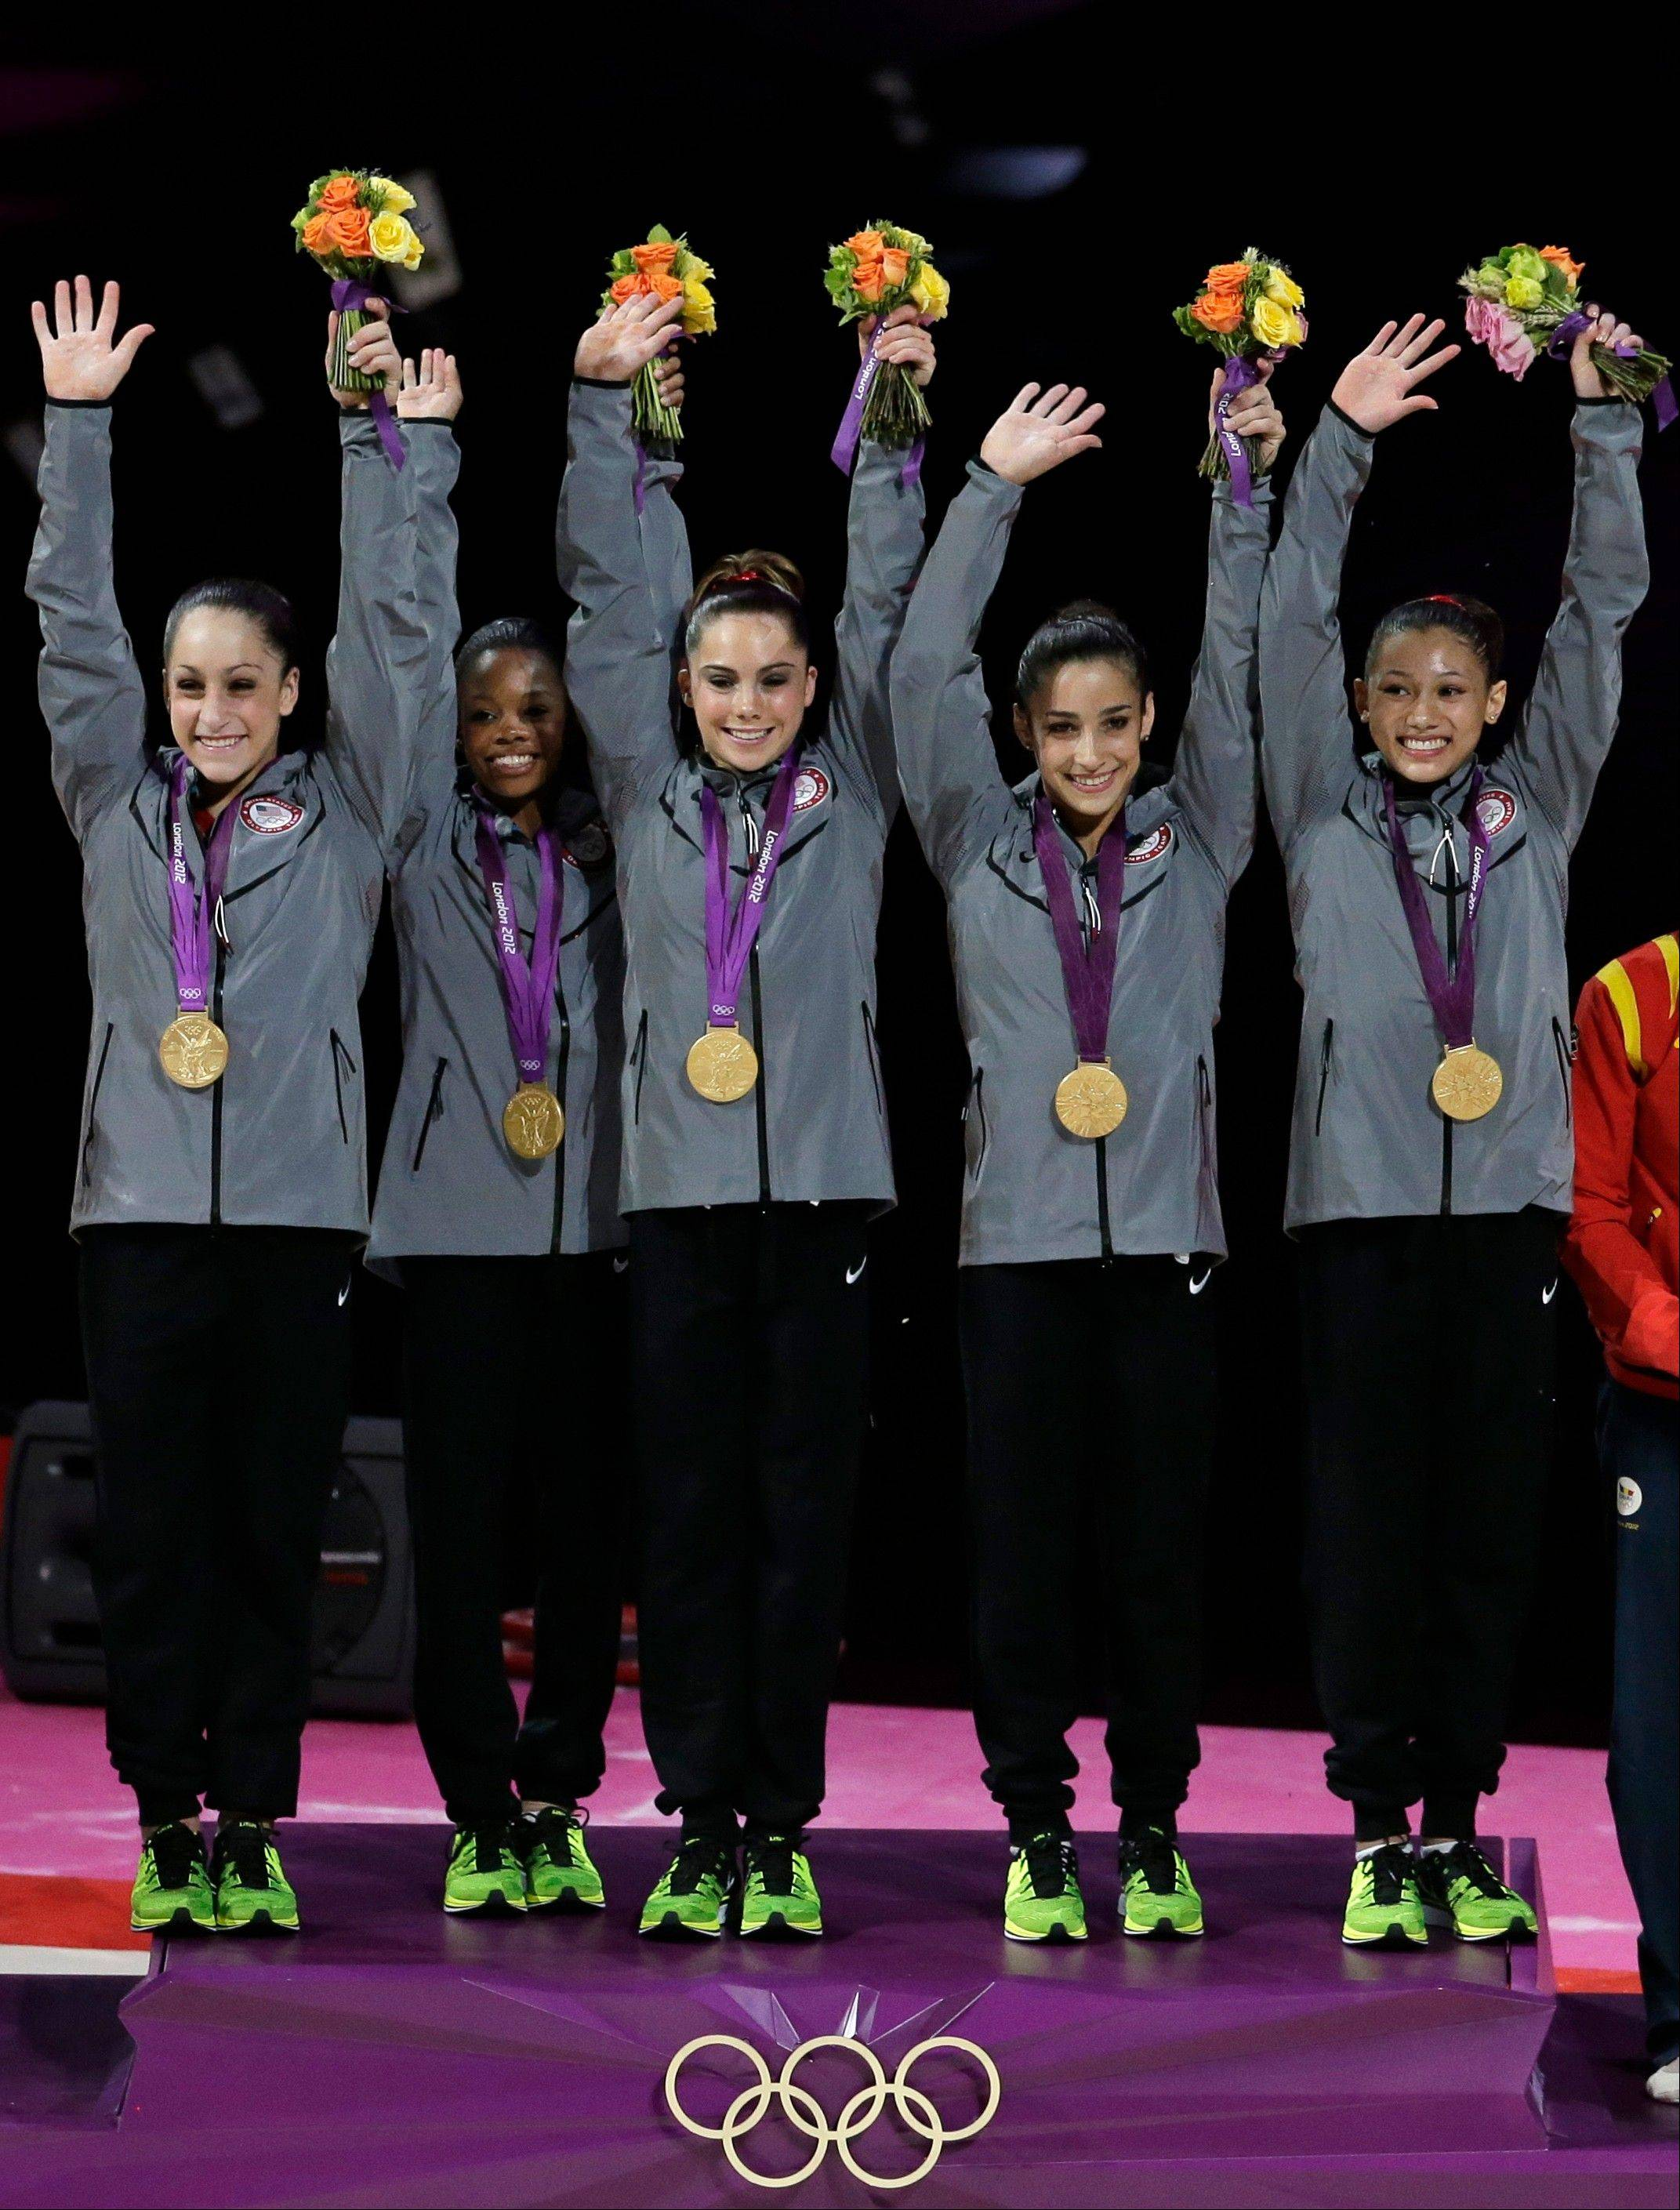 U.S. gymnasts, left to right, Jordyn Wieber, Gabrielle Douglas, McKayla Maroney, Alexandra Raisman, Kyla Ross raise their hands on the podium Tuesday during the medal ceremony at the 2012 Summer Olympics in London. They won the gold.